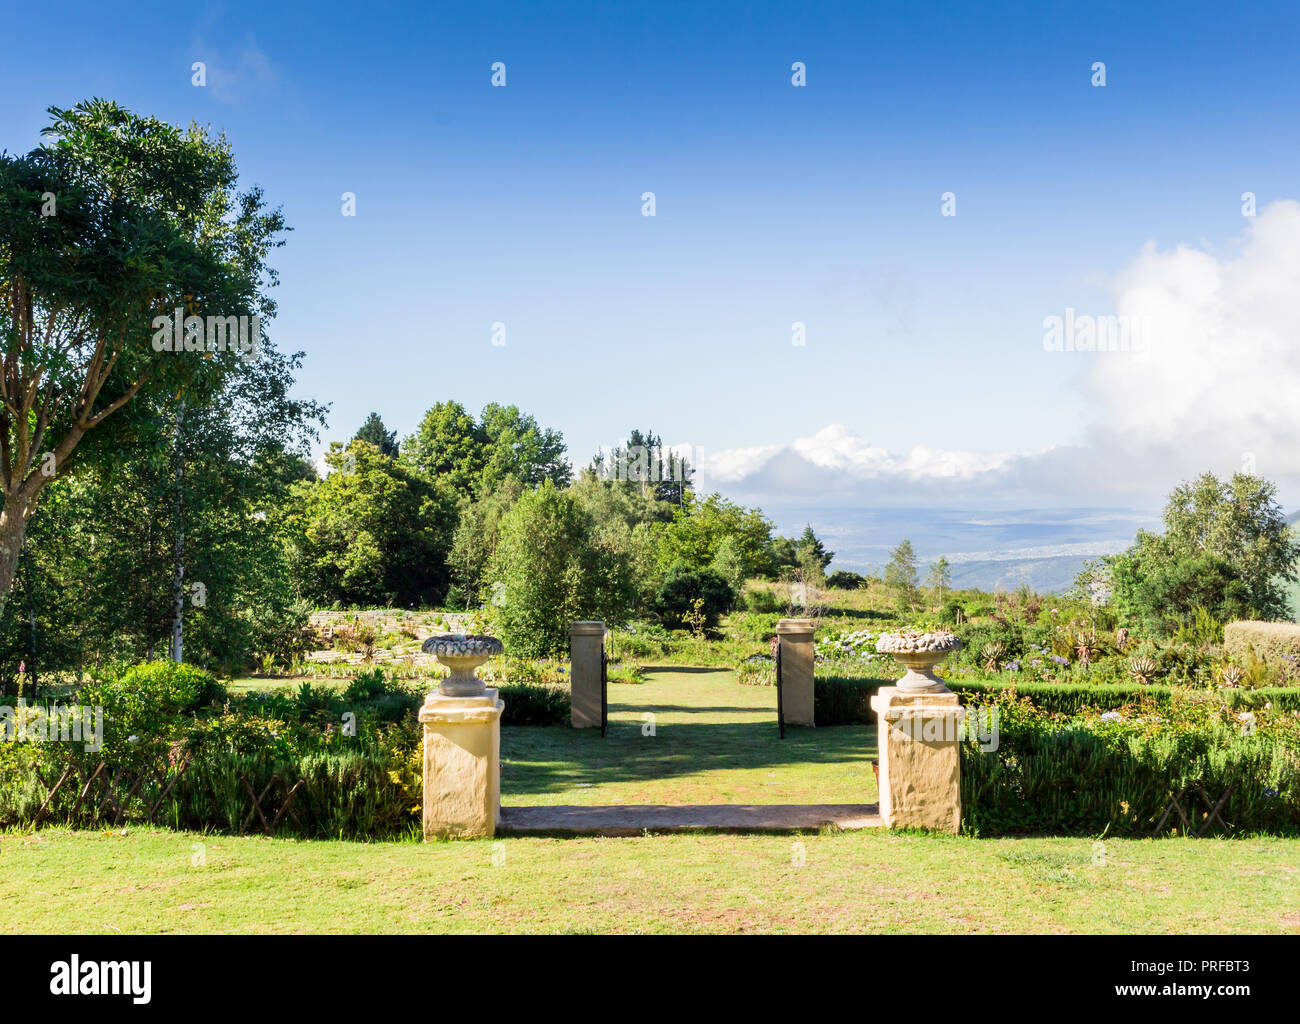 Formal Garden With Walls And Ornamental Plant Pots On The Edge Of Hogsback,  Eastern Cape, South Africa Overlooking A Valley, With Labyrinth In Backgou